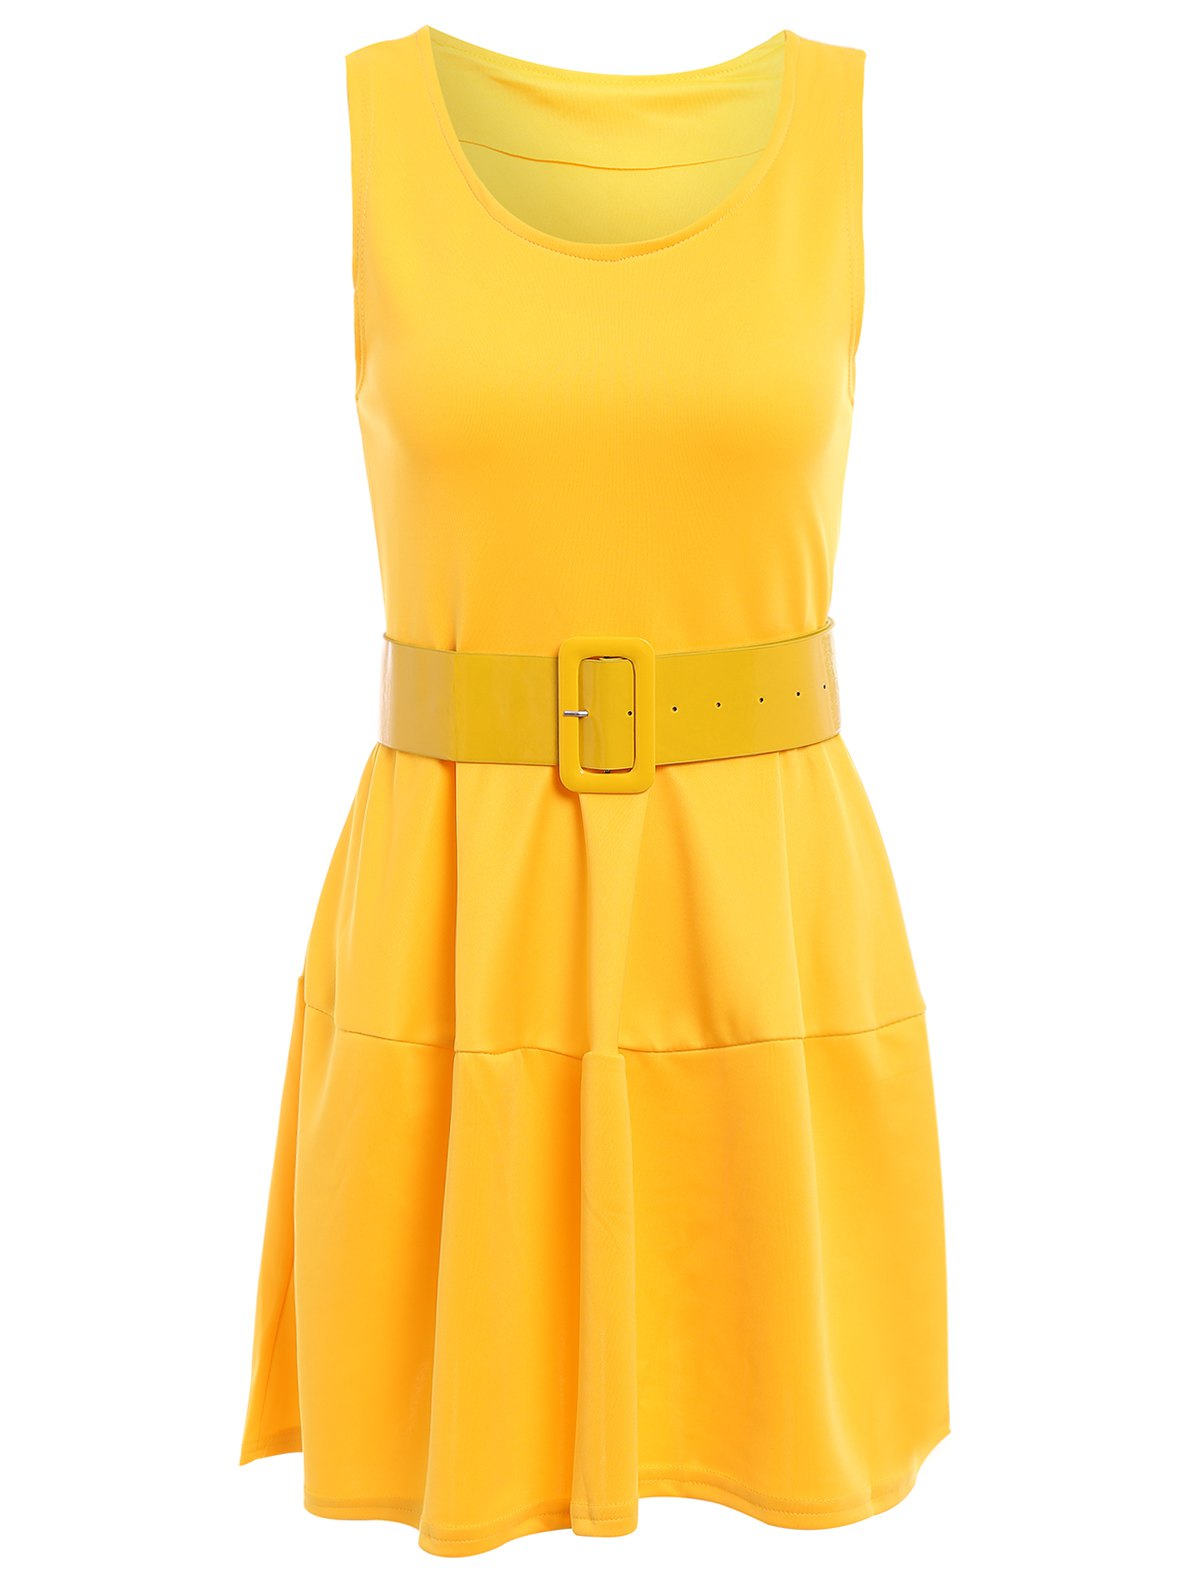 Women's Cute Narrow Waist Ruffles Candy Color Sleeveless Dress - YELLOW ONE SIZE